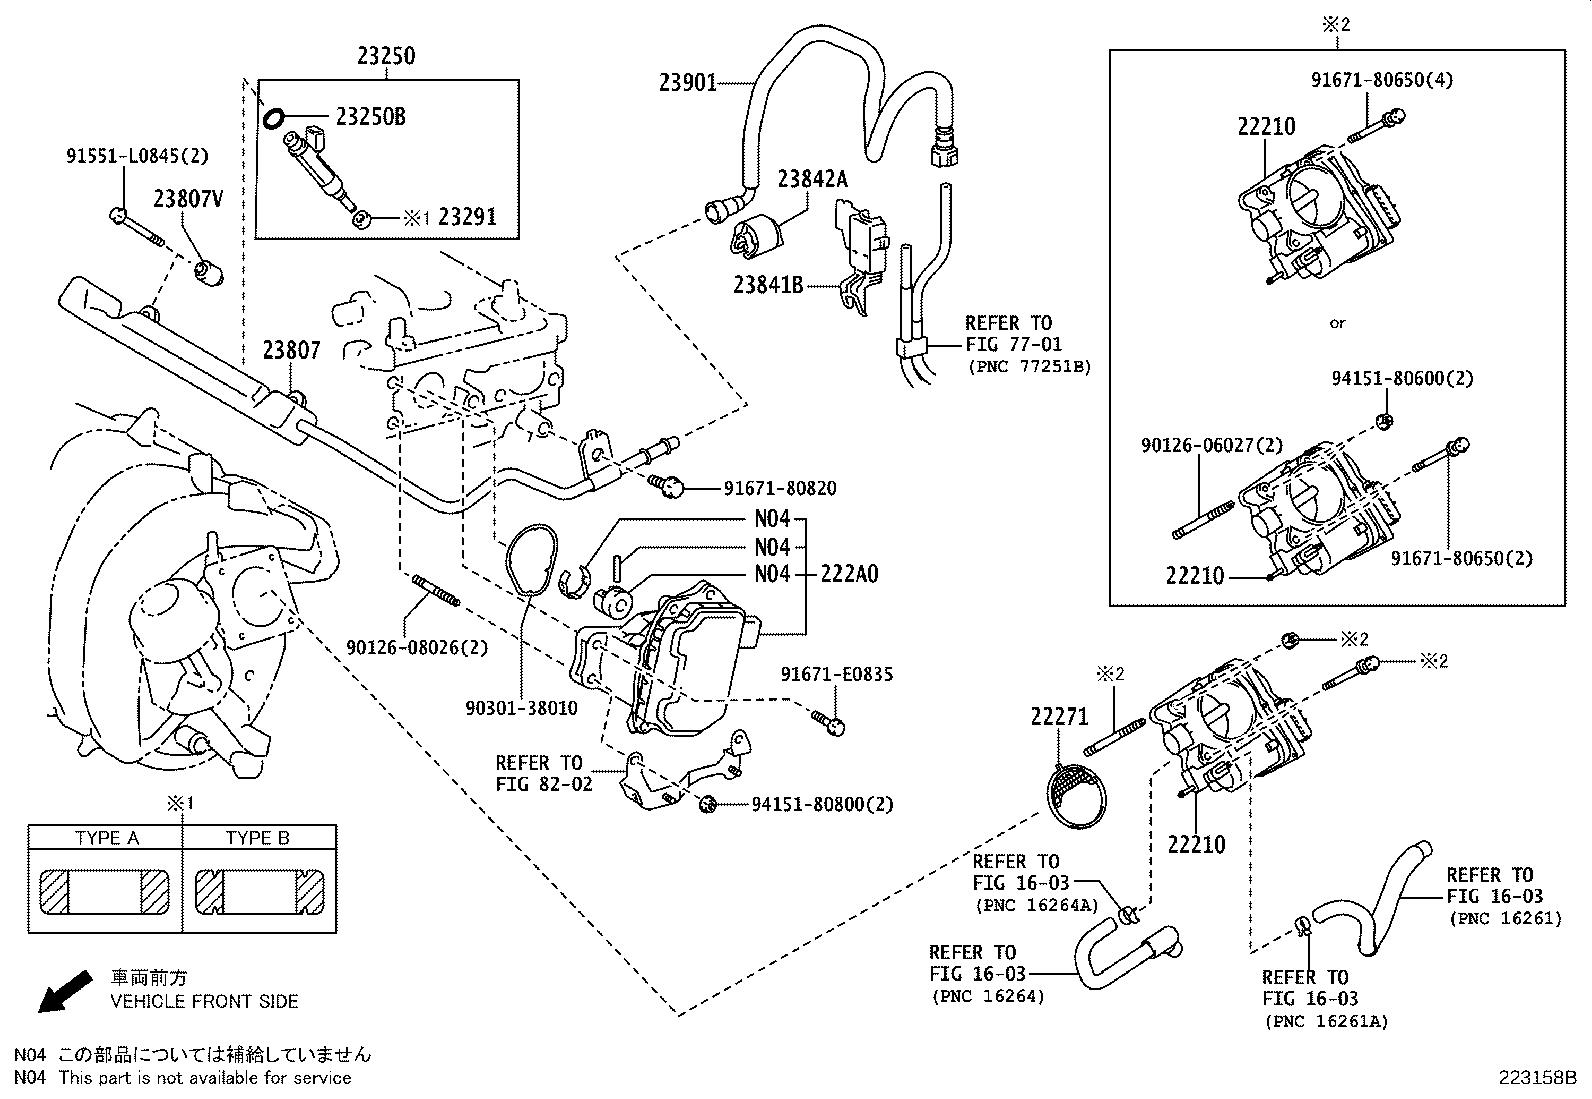 Toyota Corolla iM Clamp, fuel pipe, no. 2(for efi). System